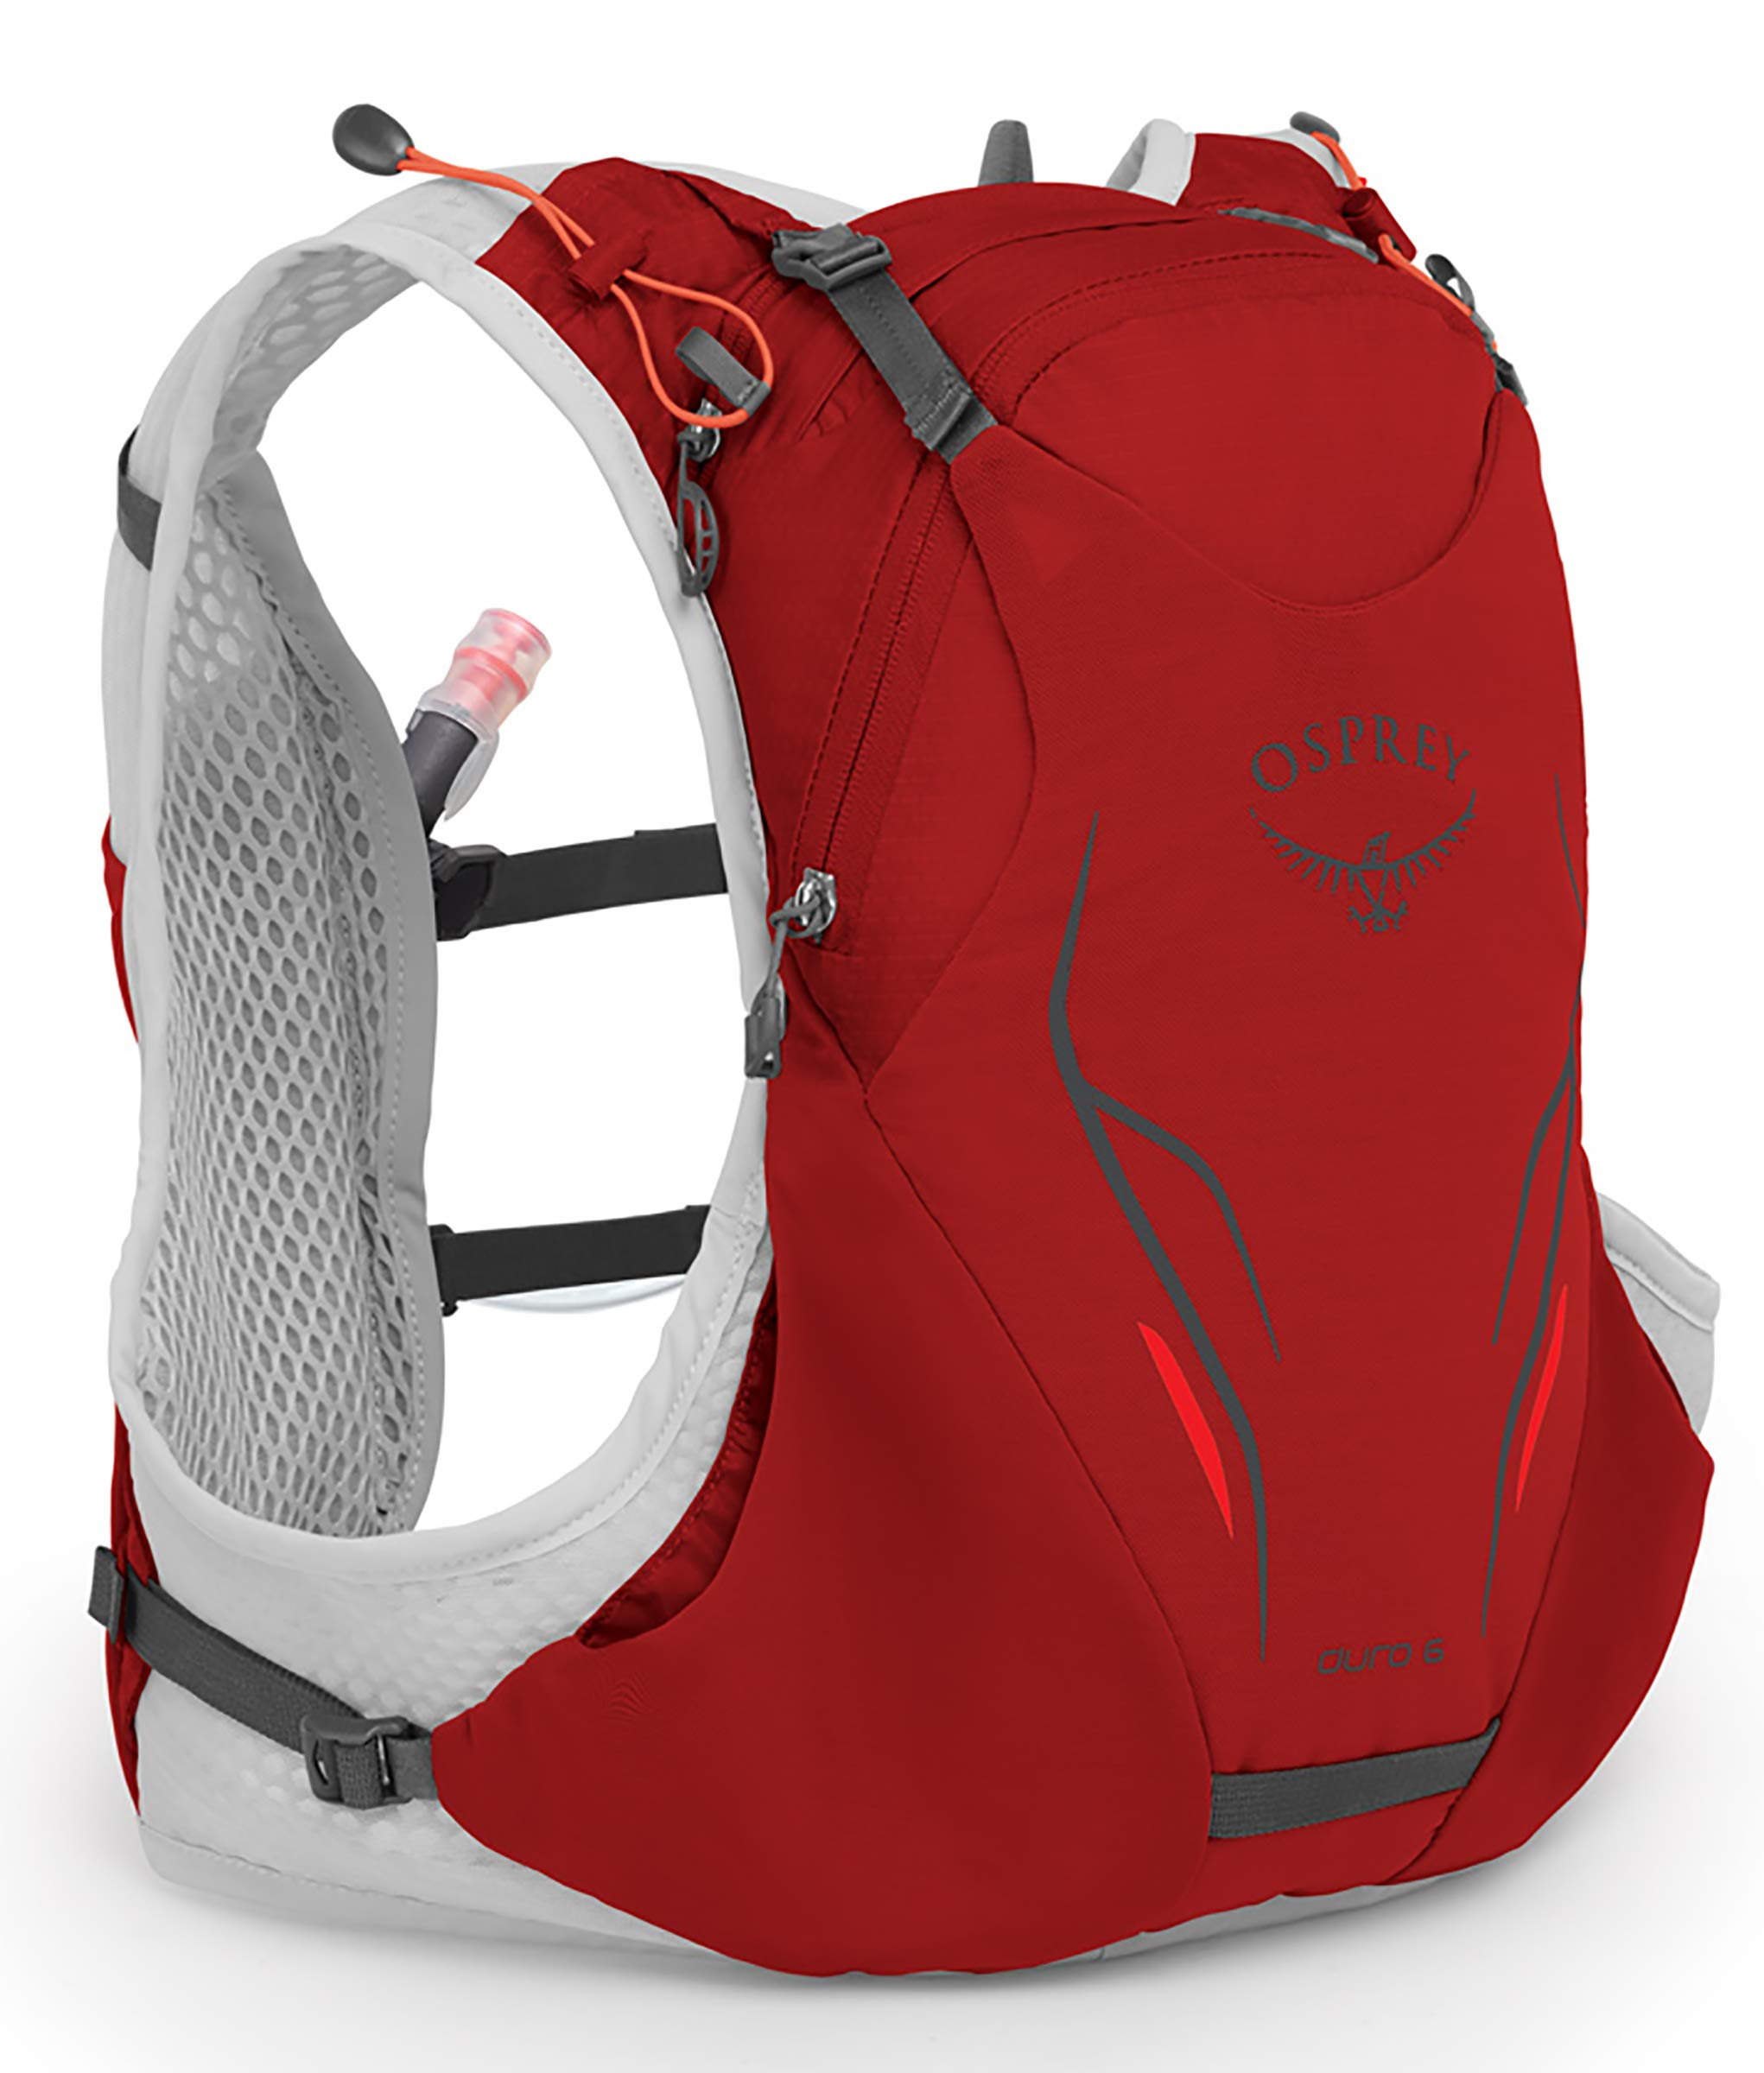 Osprey Packs Duro 6 Running Hydration Vest, Phoenix Red, Small/Medium